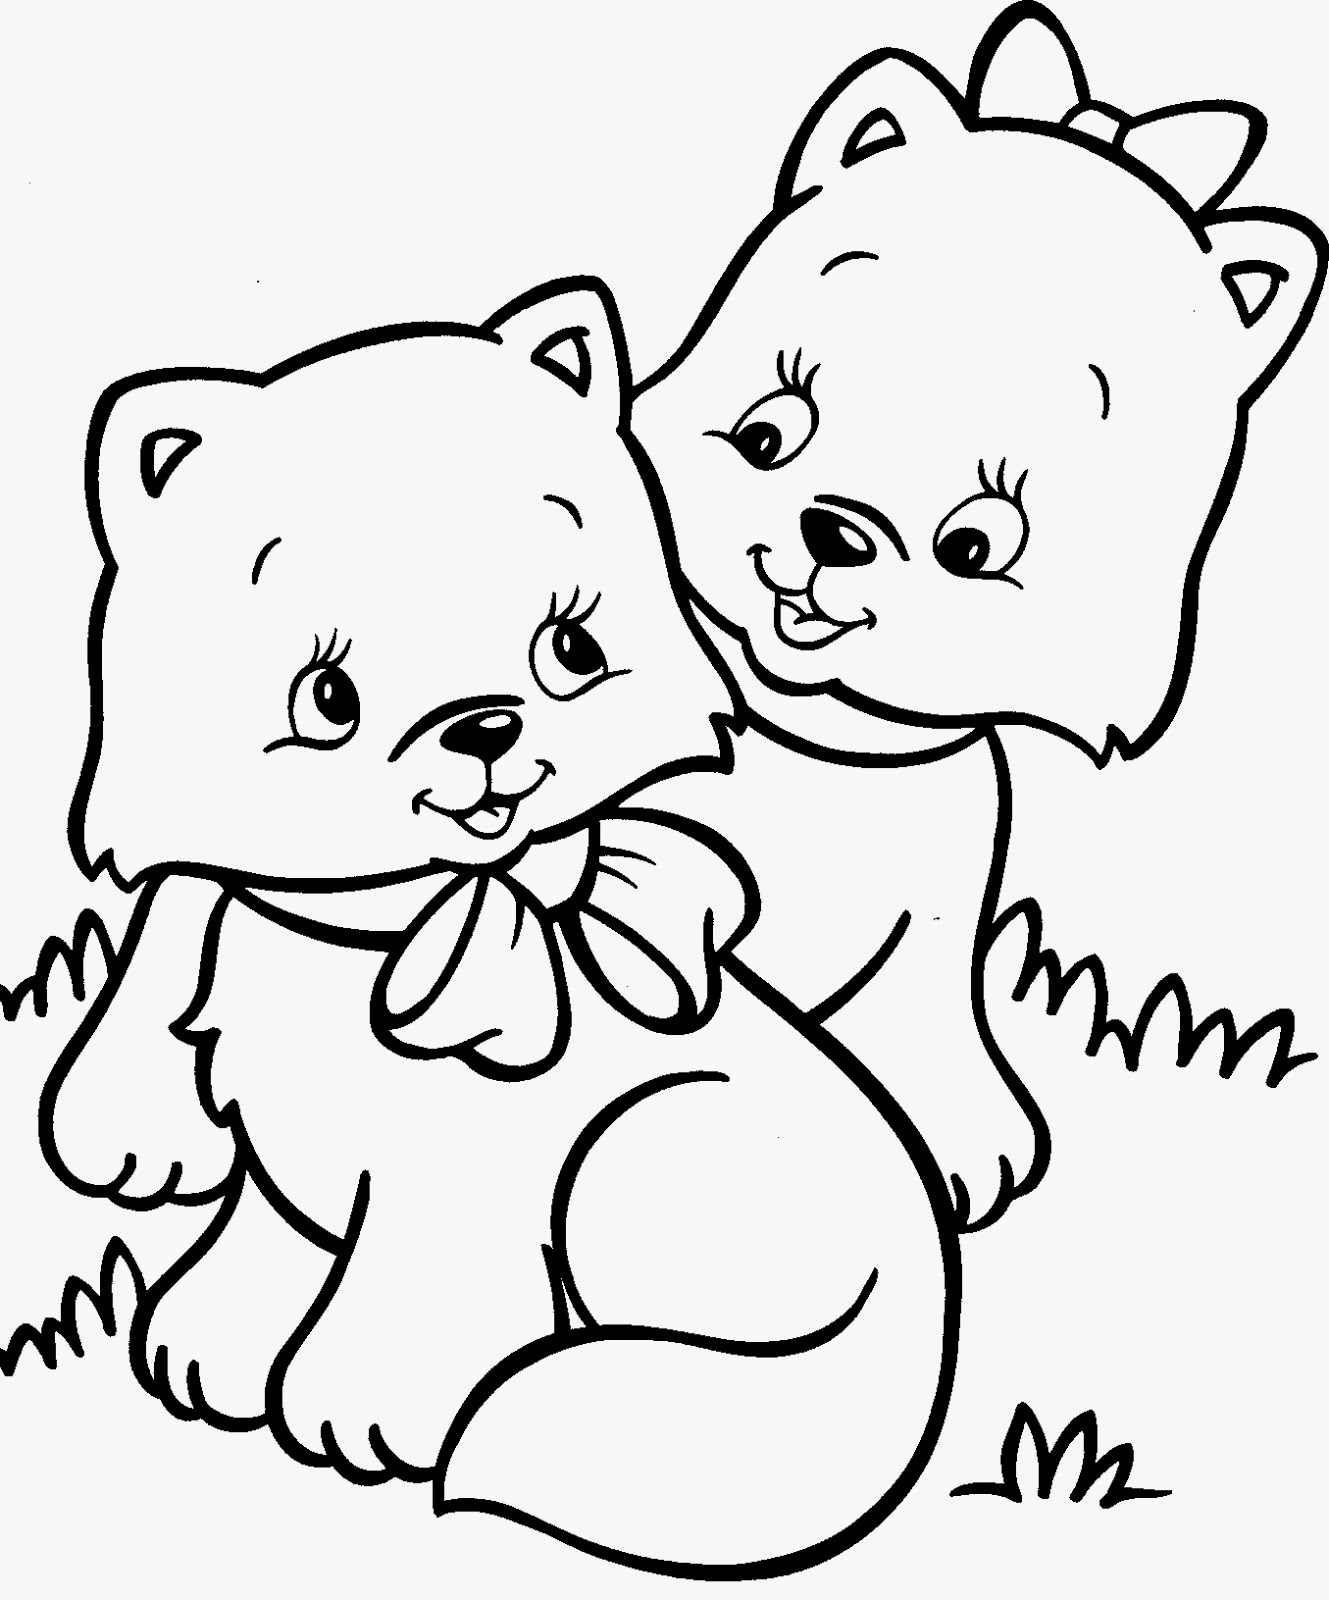 cat coloring pictures cat coloring pages for adults best coloring pages for kids pictures cat coloring